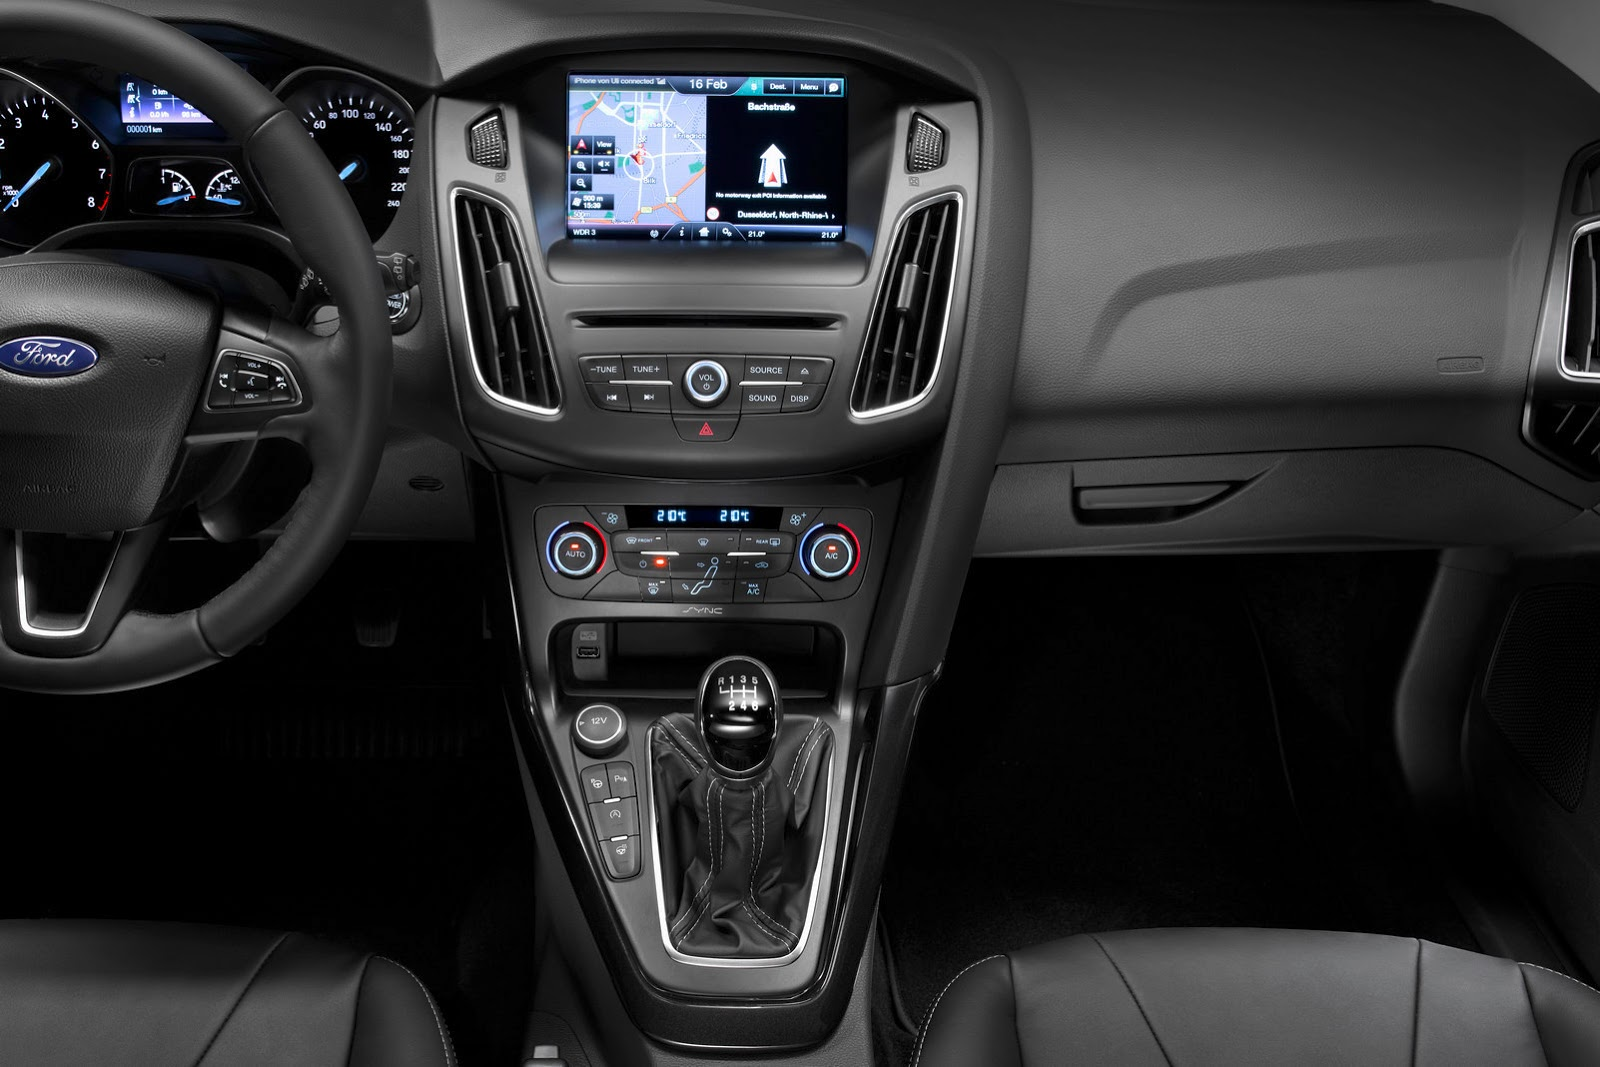 New Ford Focus Gets A Sharper Grille And Cockpit Like Interior